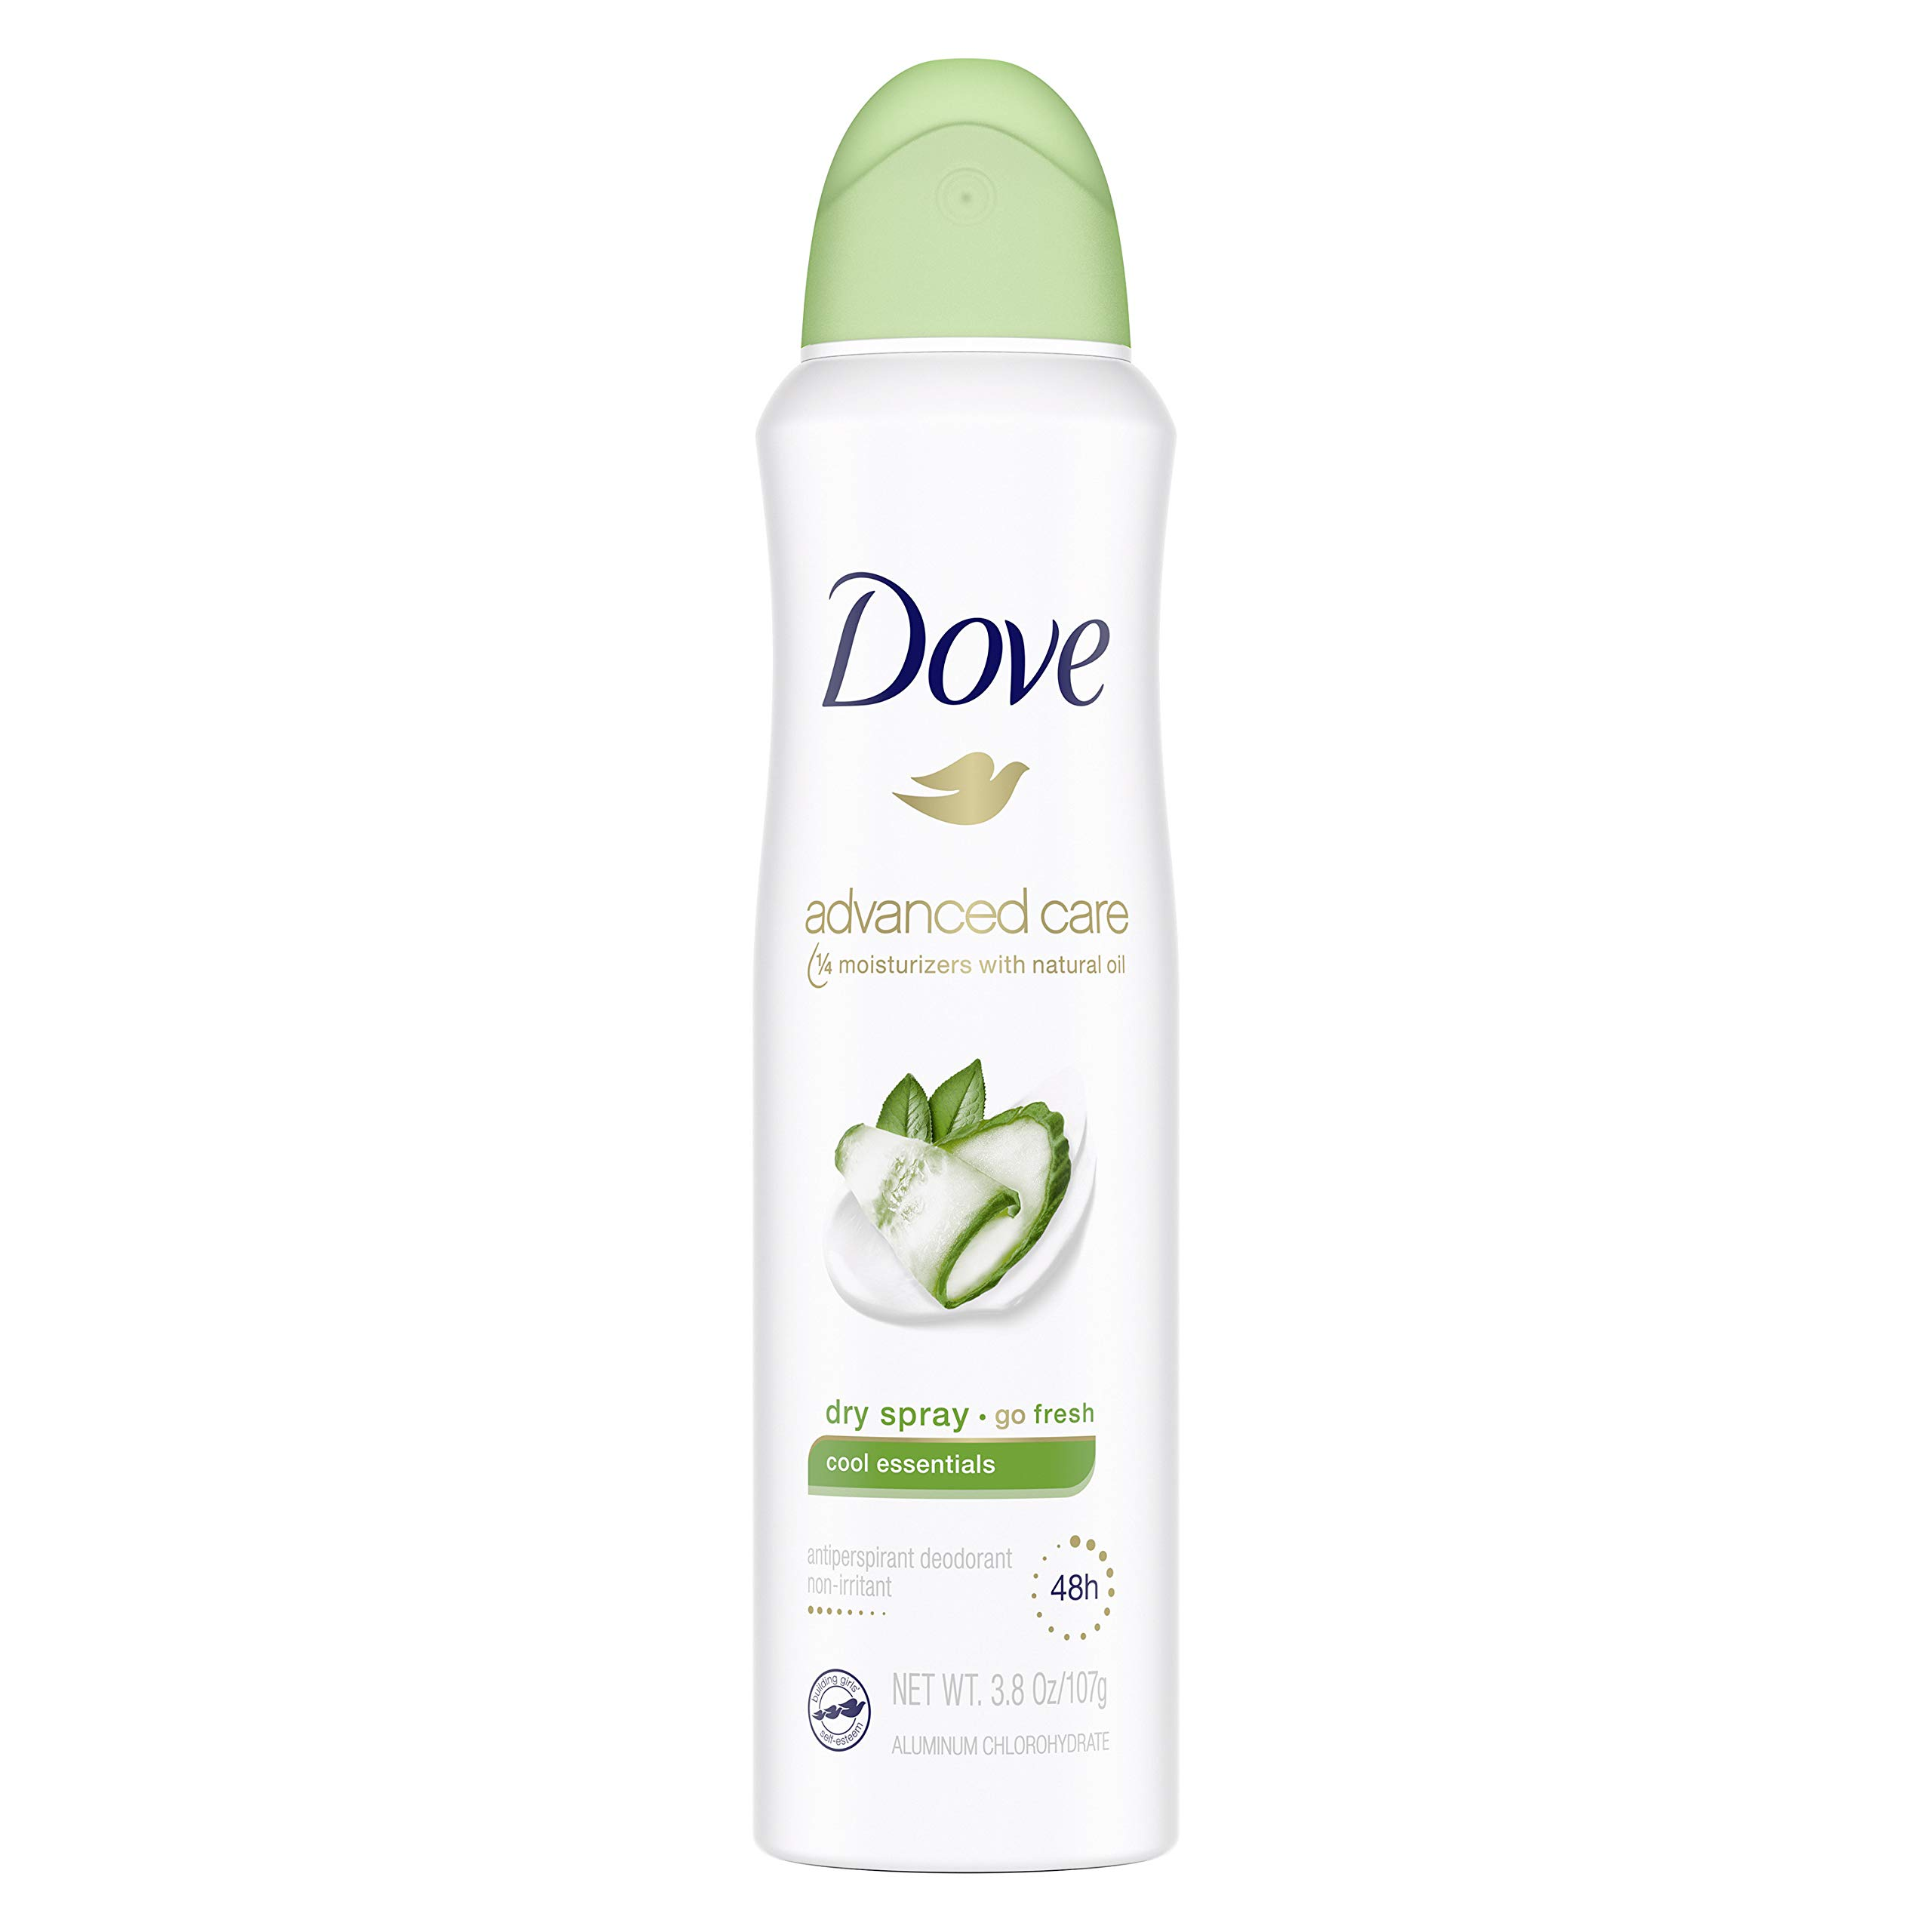 Dove Advanced Care Dry Spray Antiperspirant Deodorant for Women, Cool Essentials, for 48 Hour Protection And Soft And Comfortable Underarms, 3.8 oz